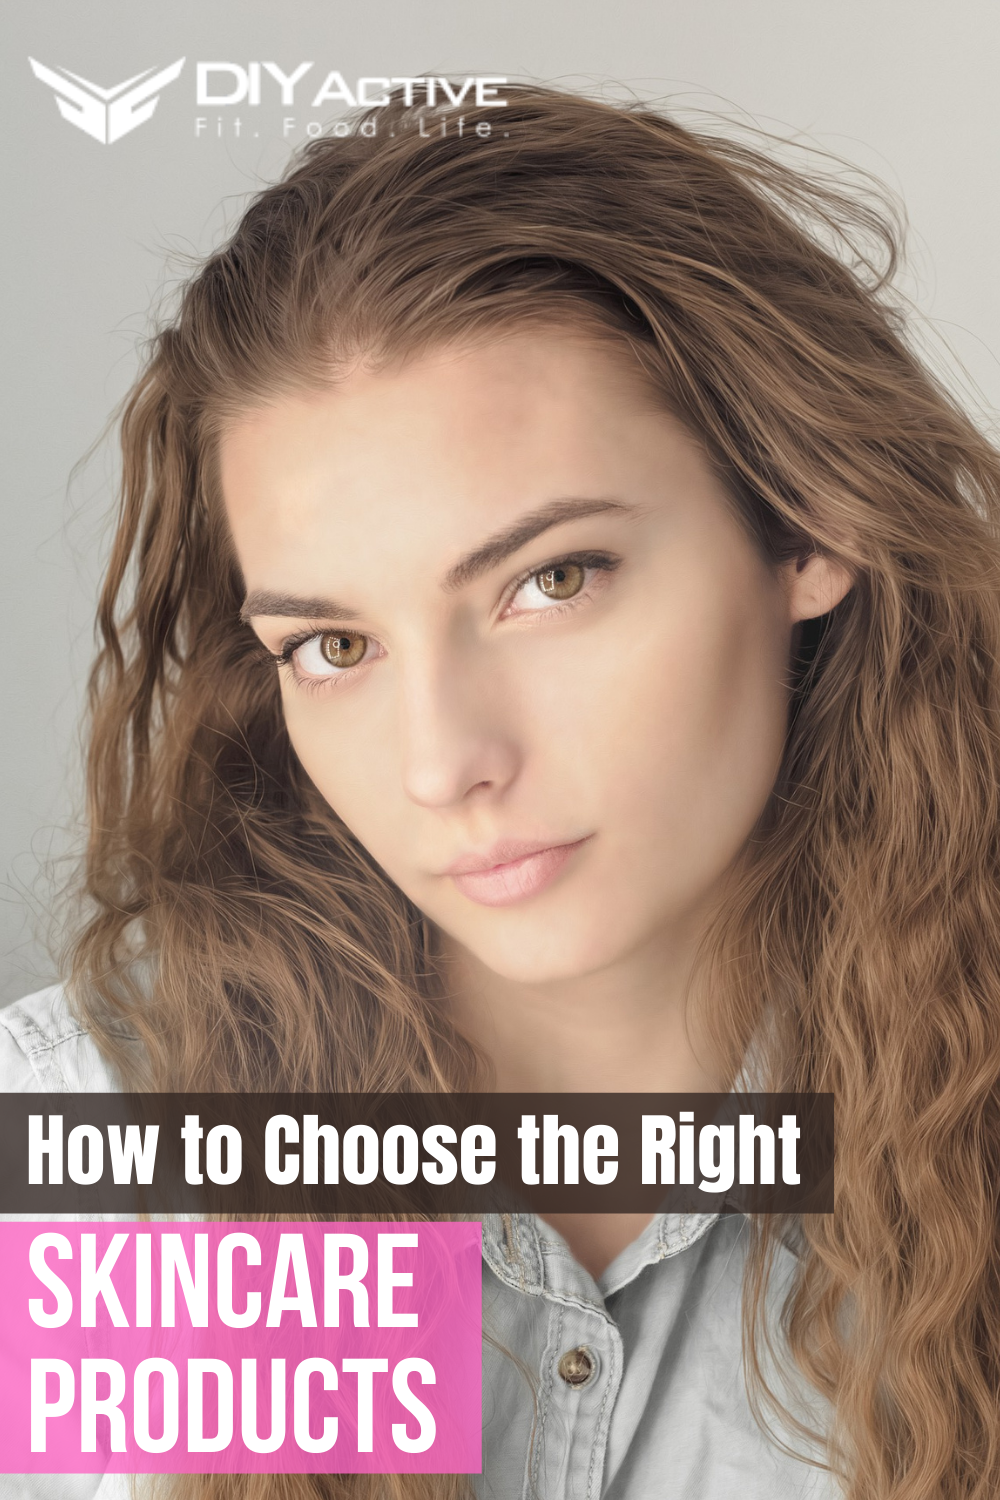 Know Your Skin: How to Choose the Right Skincare Products